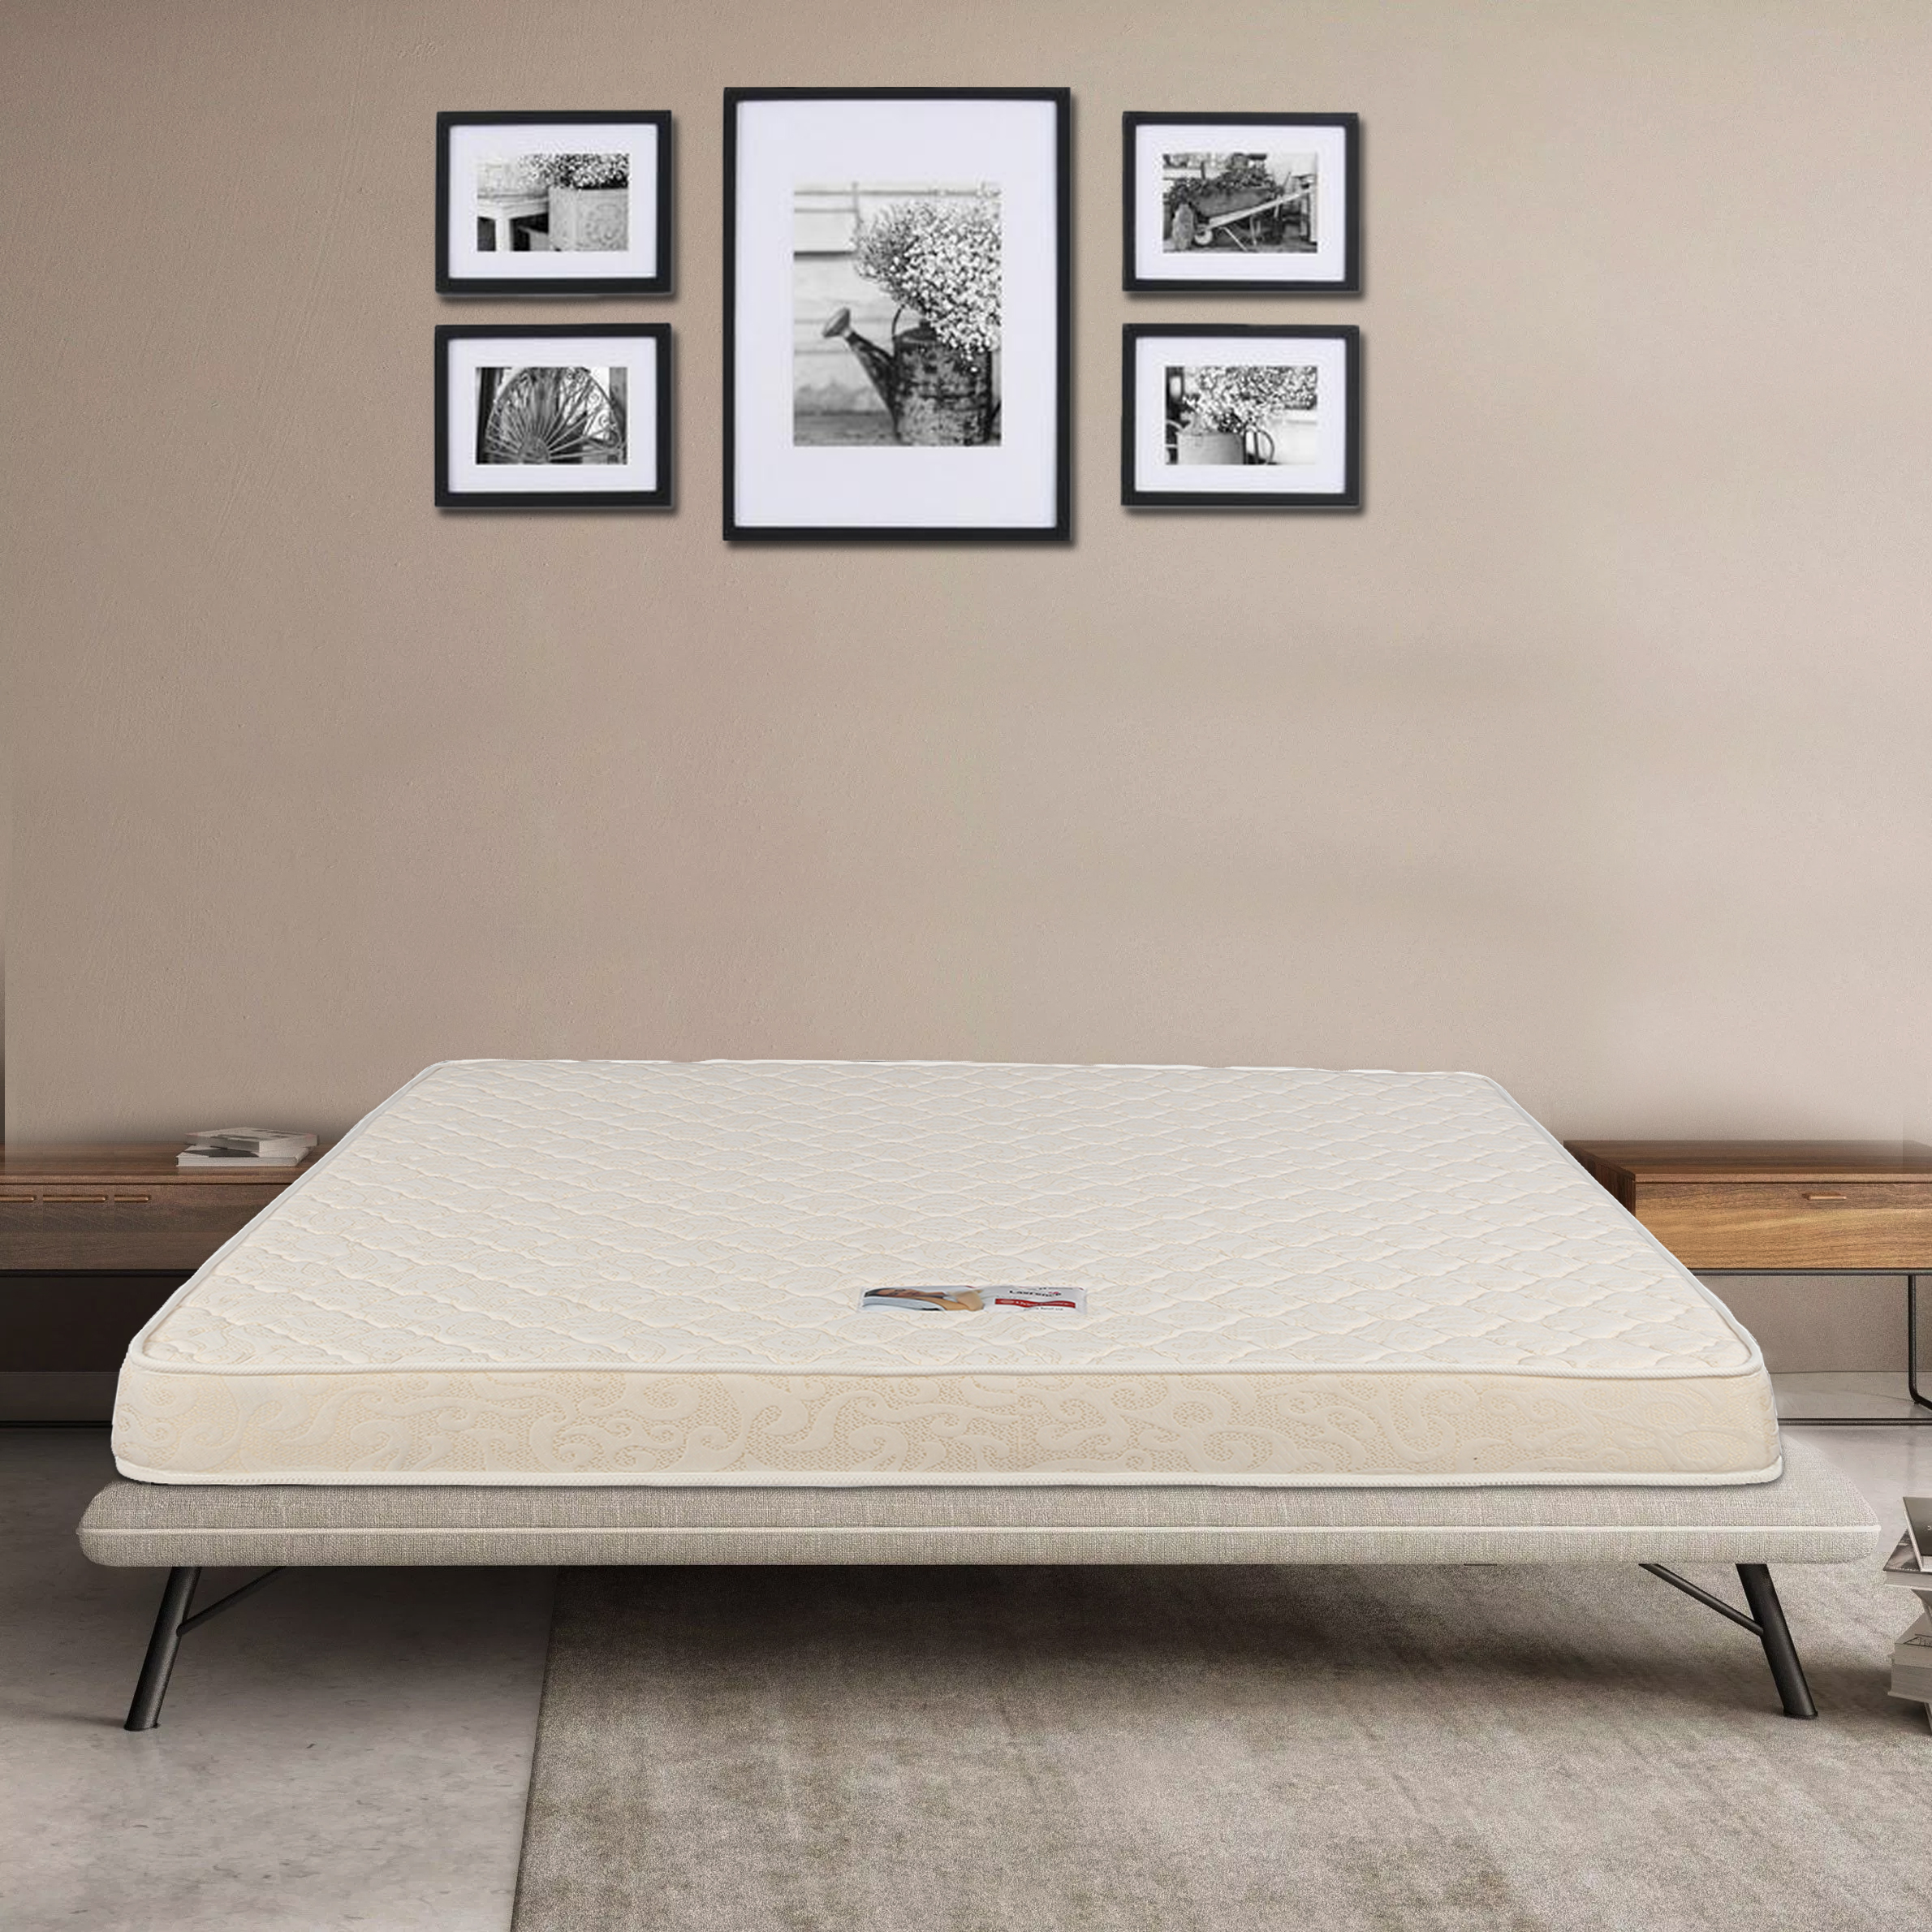 Daisy Fabric Queen Bed Mattress in Off White Colour by HomeTown